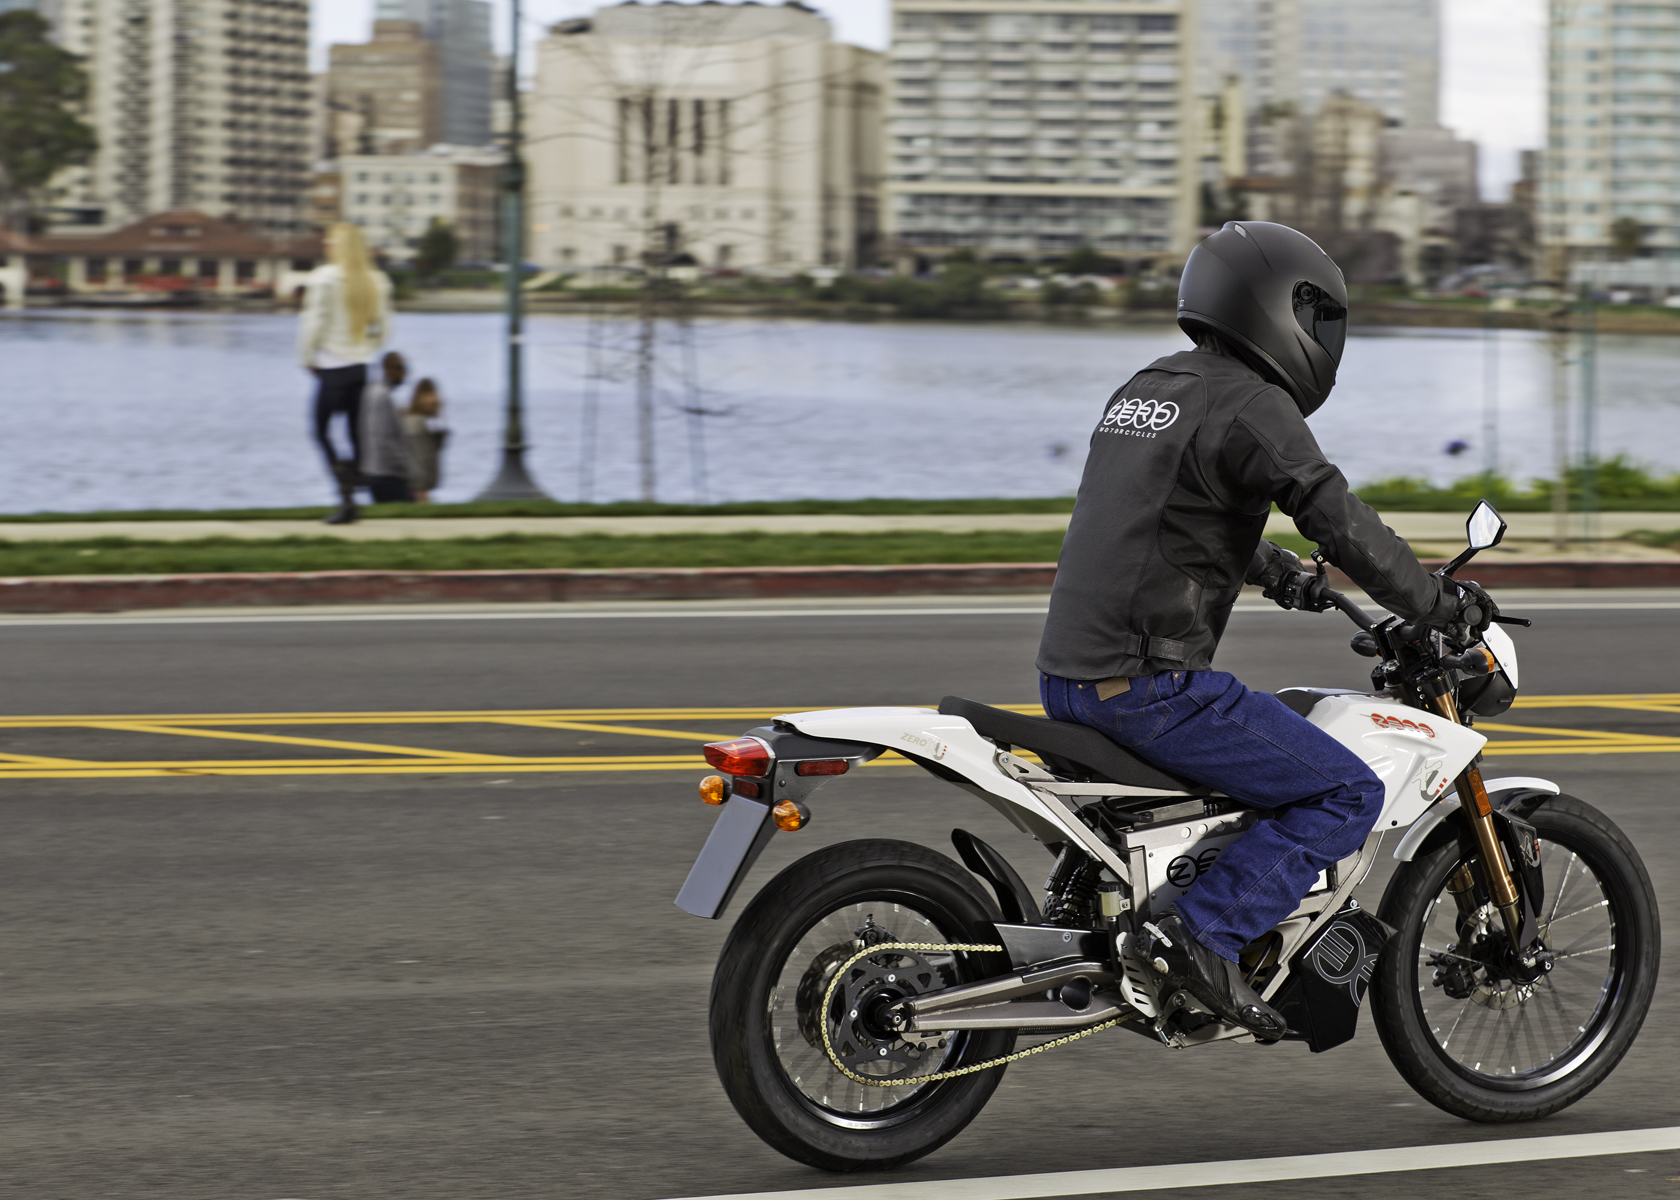 2011 Zero XU Electric Motorcycle: On a City Road